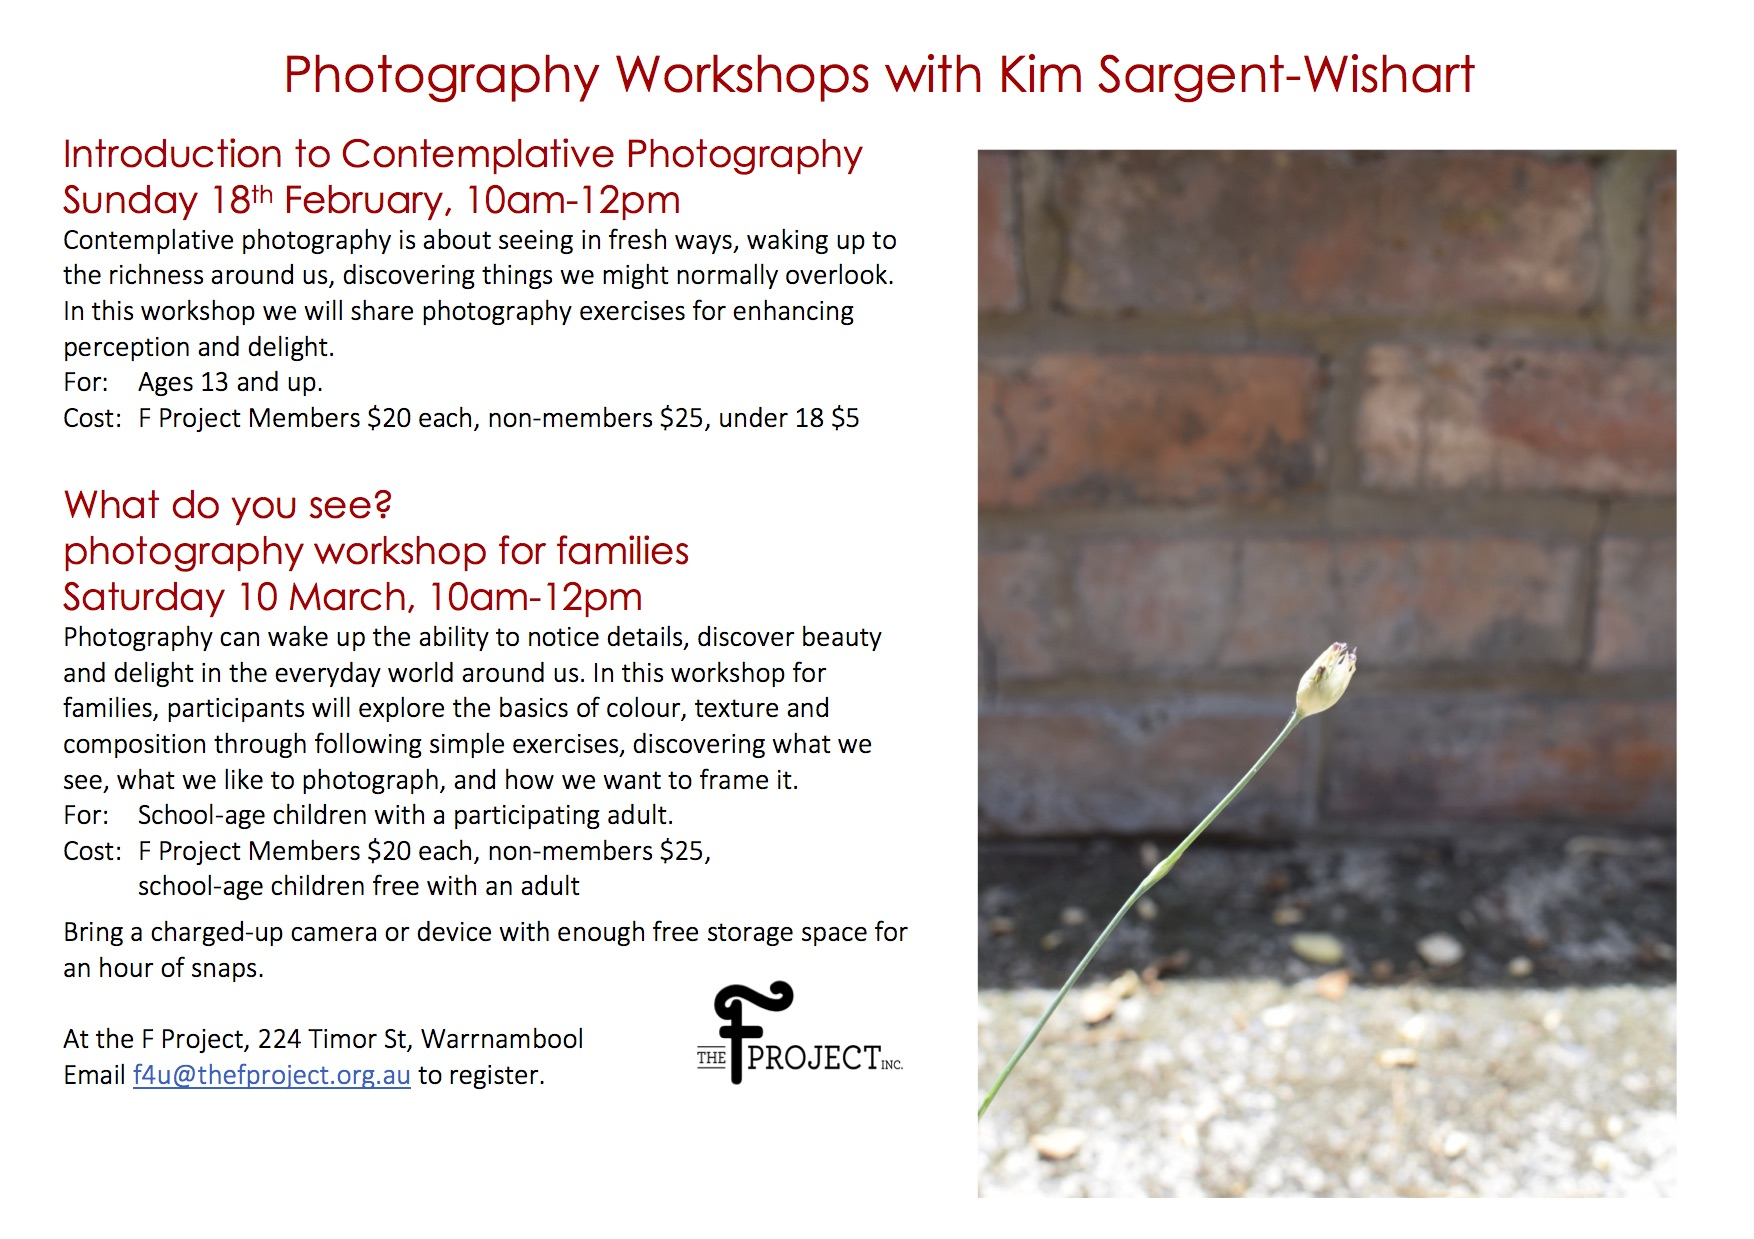 KSW photo workshops flyer option 2